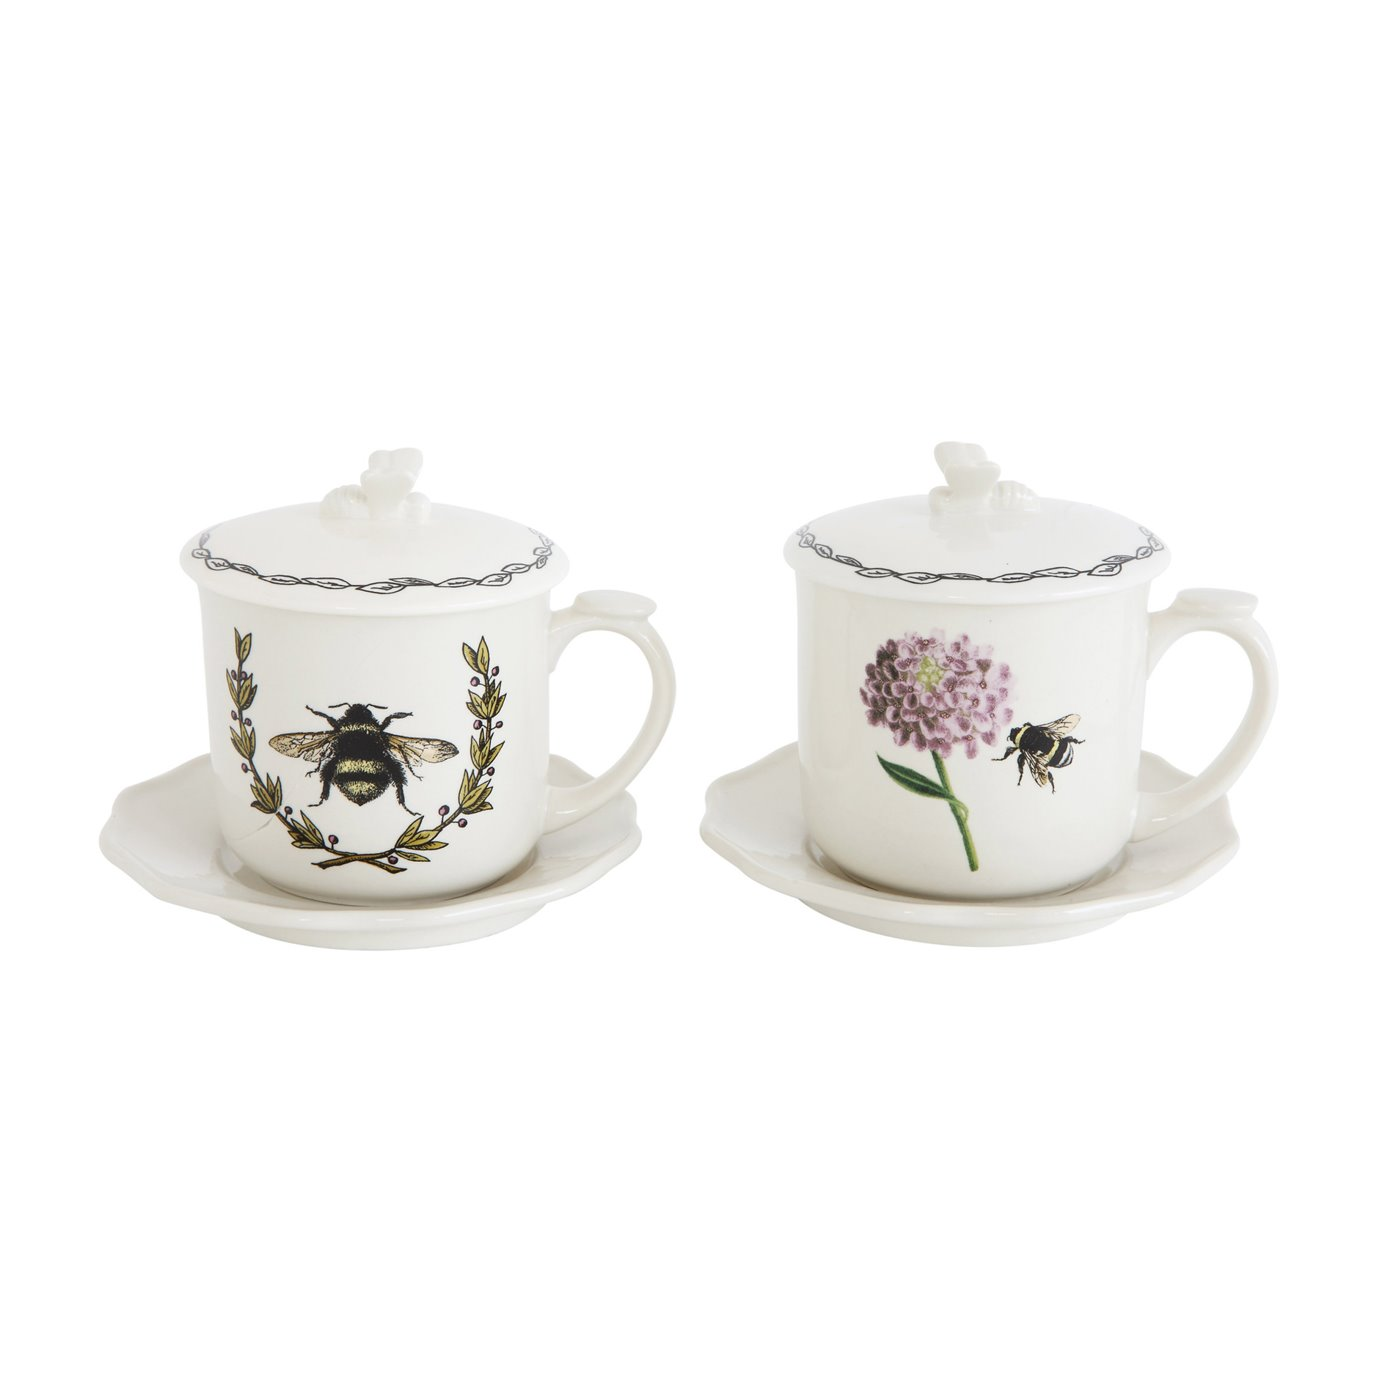 Cup with Bee Image, Lid, Saucer & Strainer (2 Styles with 4 Pieces Each)